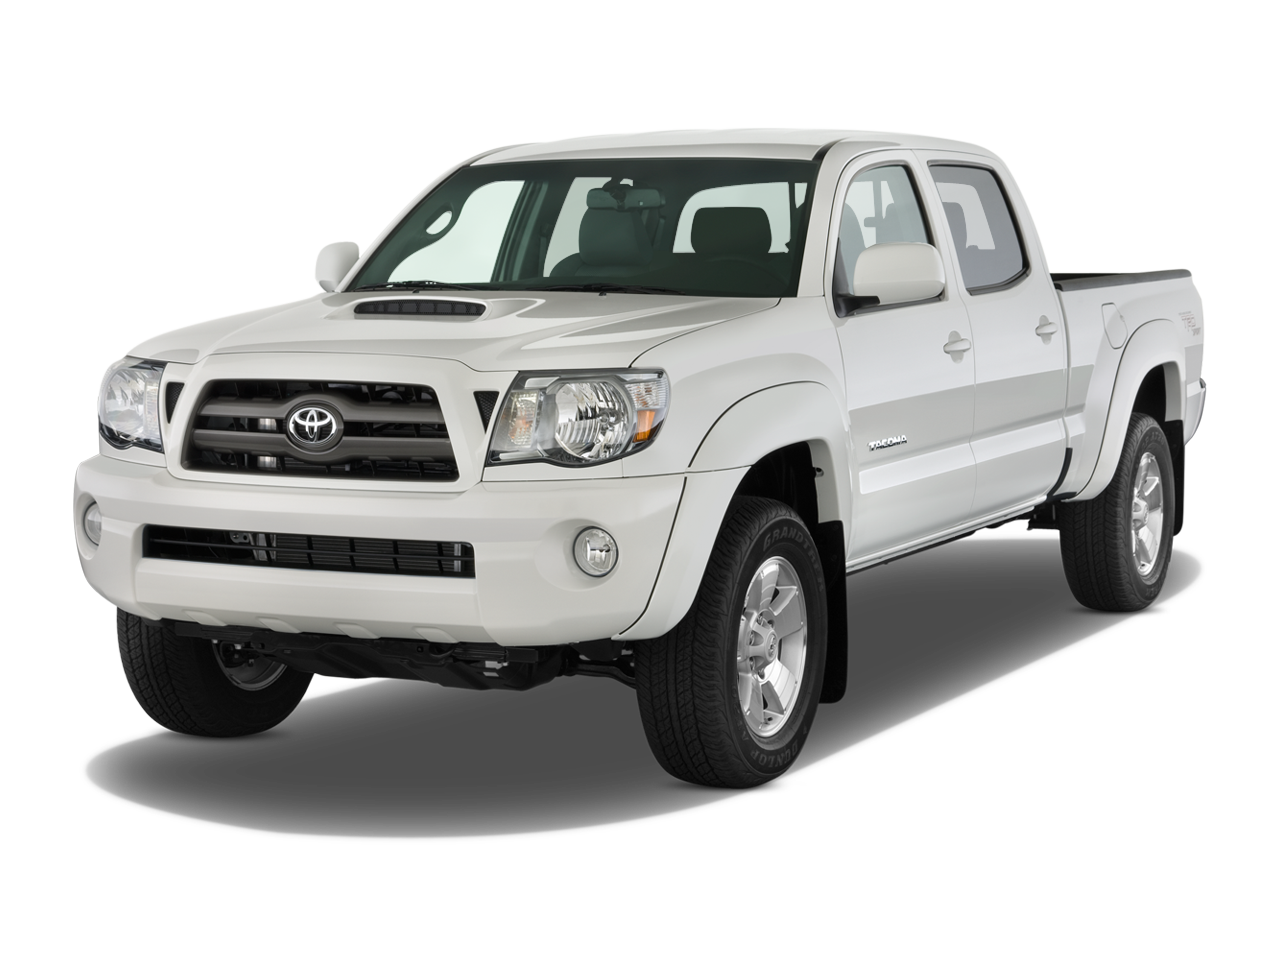 used toyota tacoma mccluskey automotive. Black Bedroom Furniture Sets. Home Design Ideas